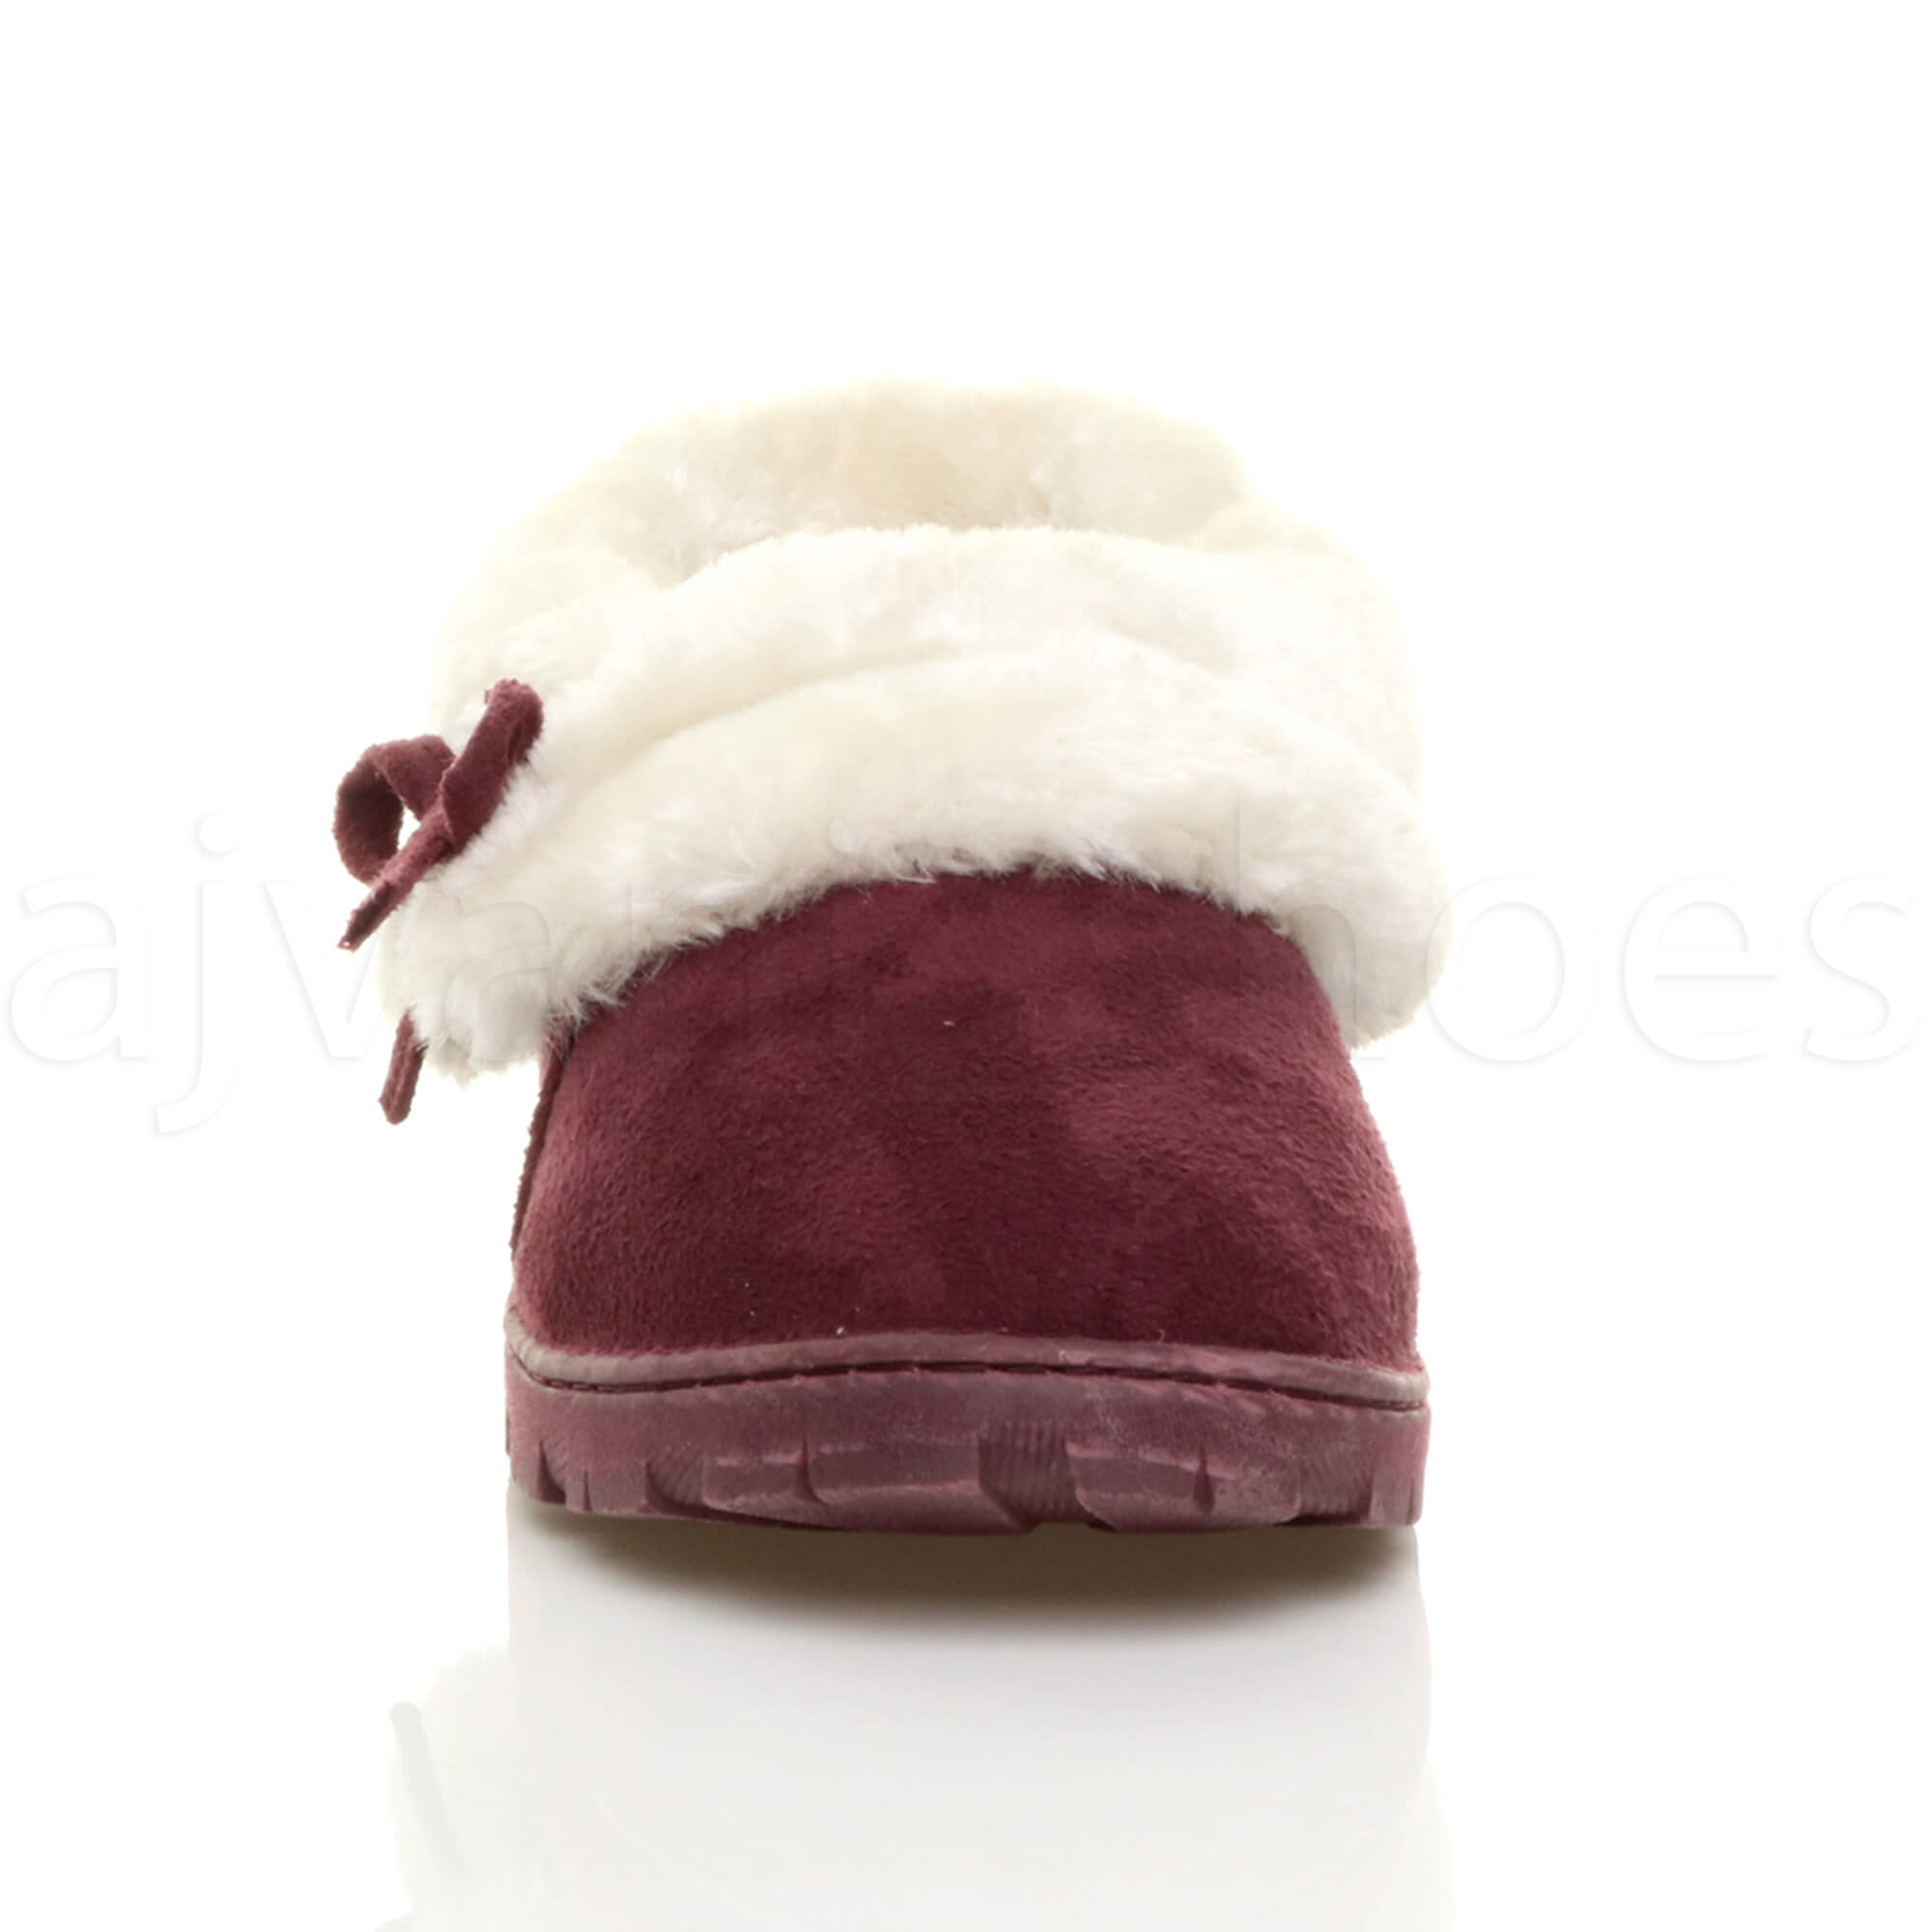 WOMENS-LADIES-FLAT-WINTER-FUR-LINED-LUXURY-SLIP-ON-ANKLE-BOOTIES-SLIPPERS-SIZE